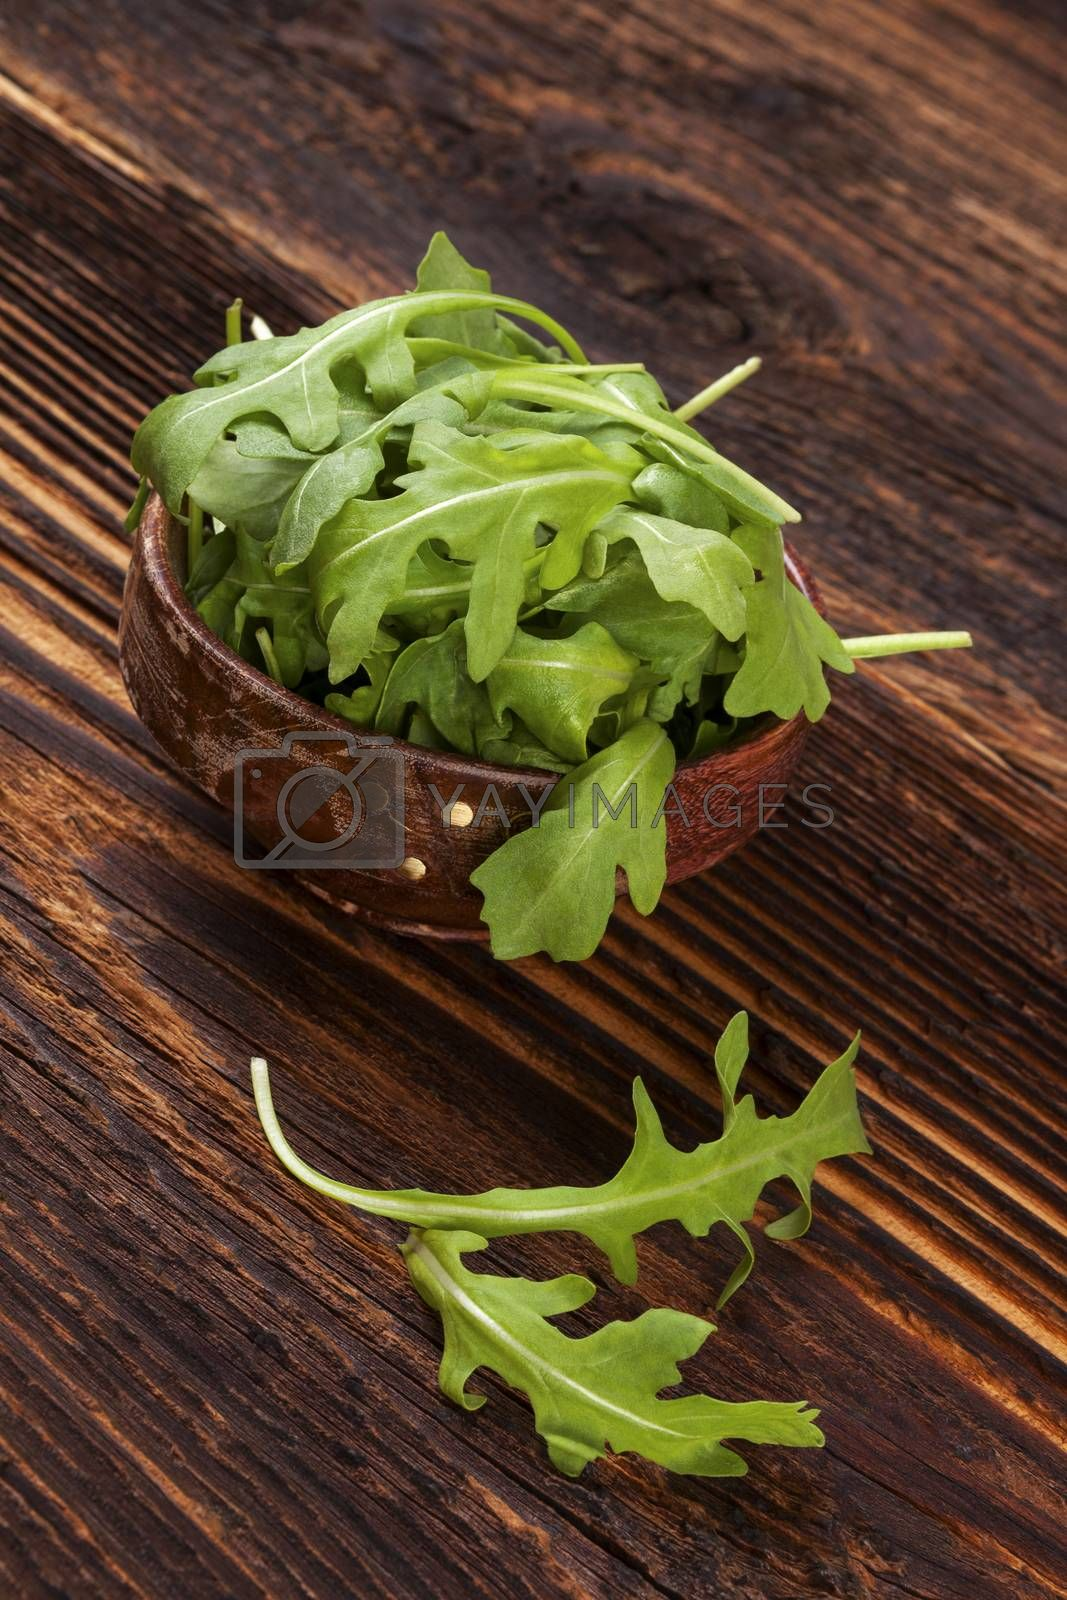 Fresh arugula salad in wooden bowl on wooden table. Healthy green salad eating.